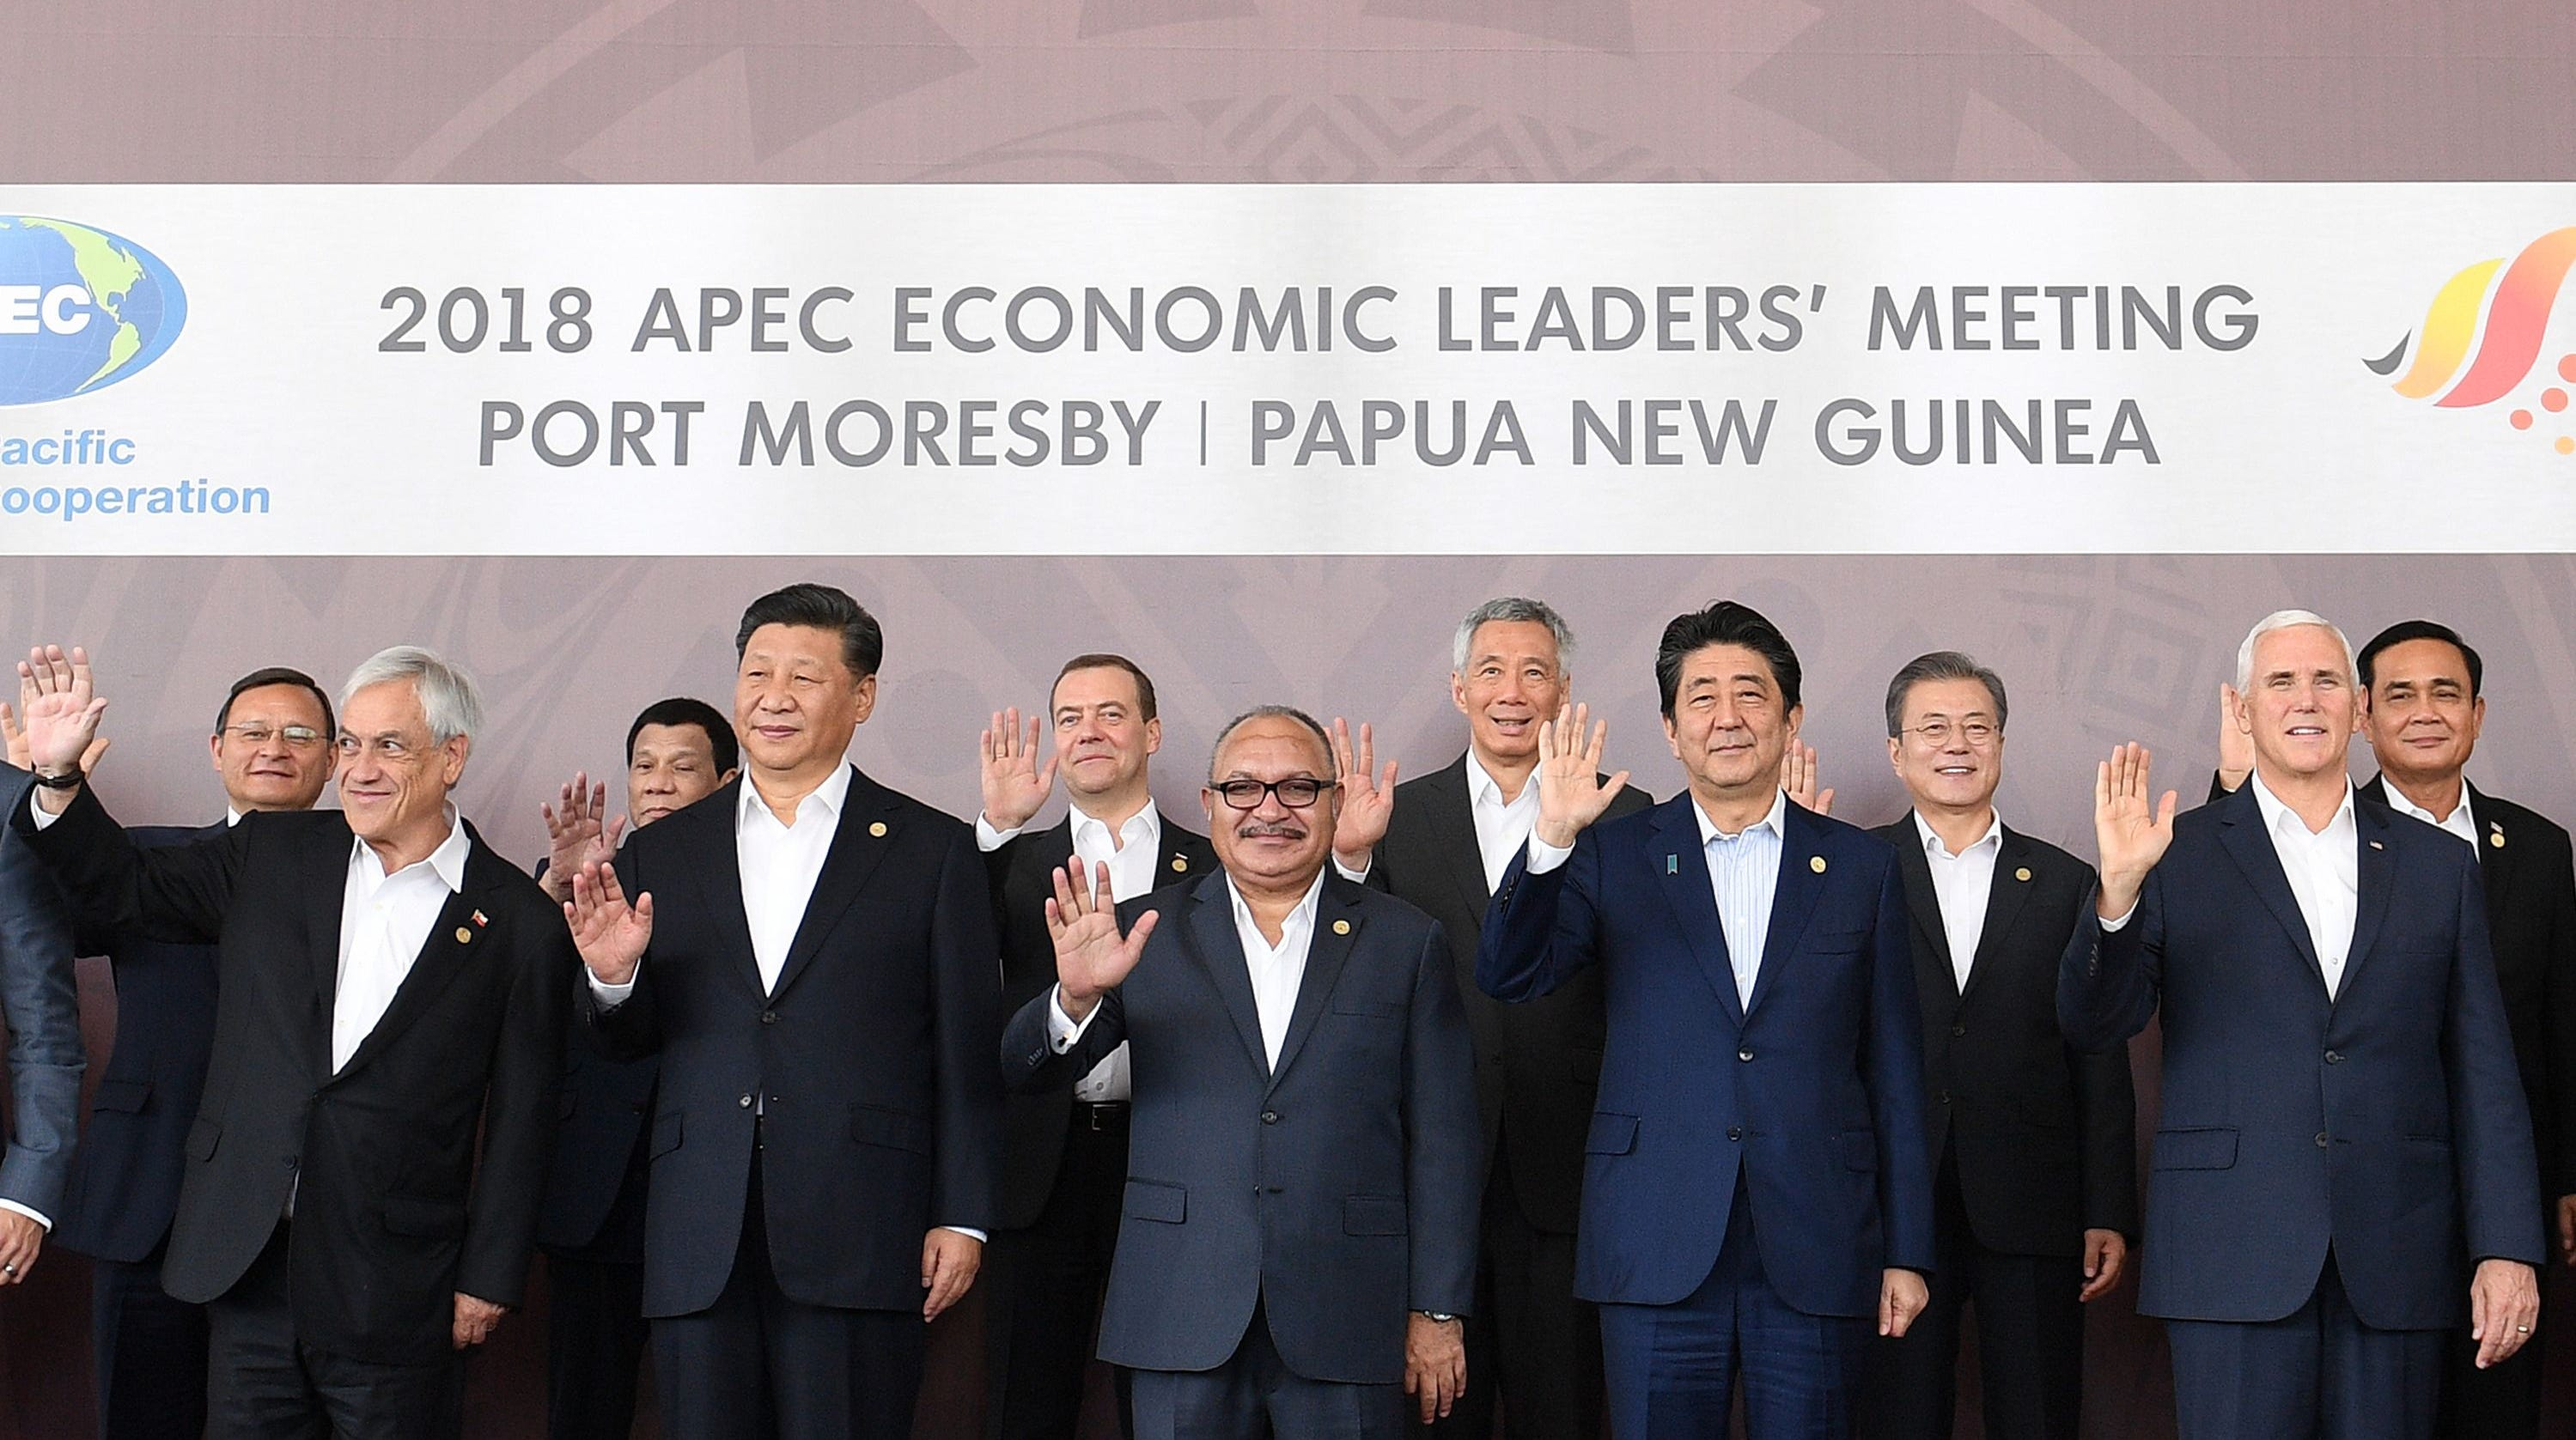 """Chile's President Sebastian Pinera, China's President Xi Jinping, Papua New Guinea's Prime Minister Peter O'Neill, Japan's Prime Minister Shinzo Abe and US Vice President Mike Pence wave with (back row L to R) Peru's Foreign Minister Nestor Popolizio, Philippine President Rodrigo Duterte, Russia's Prime Minister Dmitry Medvedev, Singapore's Prime Minister Lee Hsien Loong, South Korea's President Moon Jae-in and Thailand's Prime Minister Prayut Chan-O-Cha as they pose for a """"family photo"""" during the Asia-Pacific Economic Cooperation (APEC) Summit in Port Moresby on November 18, 2018."""